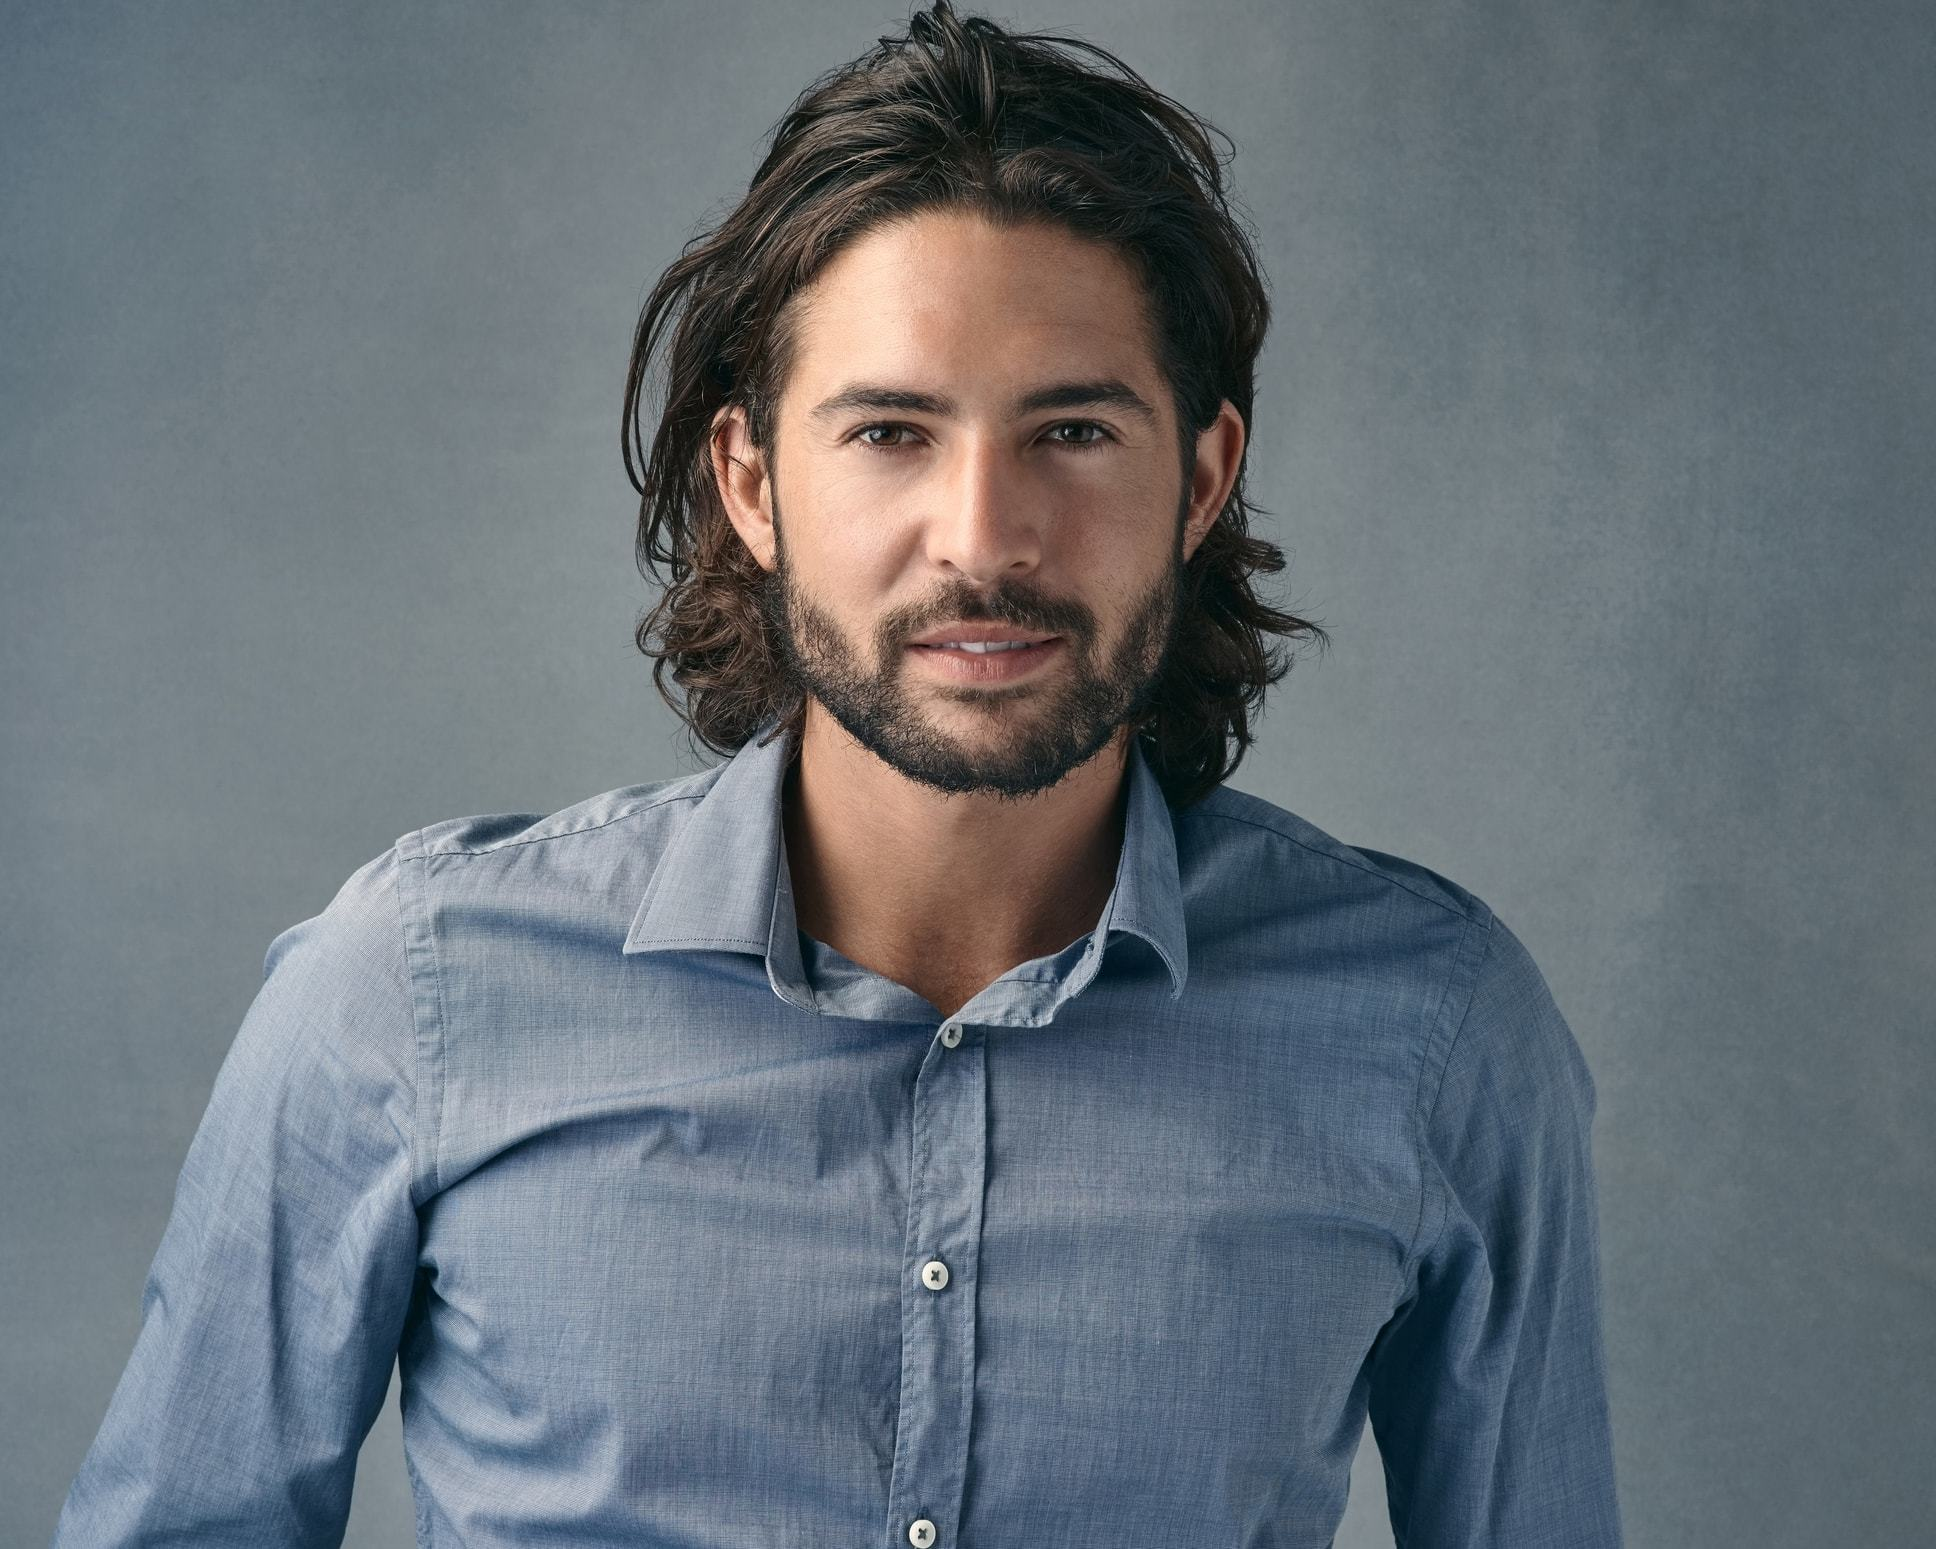 21 Best Long Hairstyles for Men with Thick Hair in 2019 ...